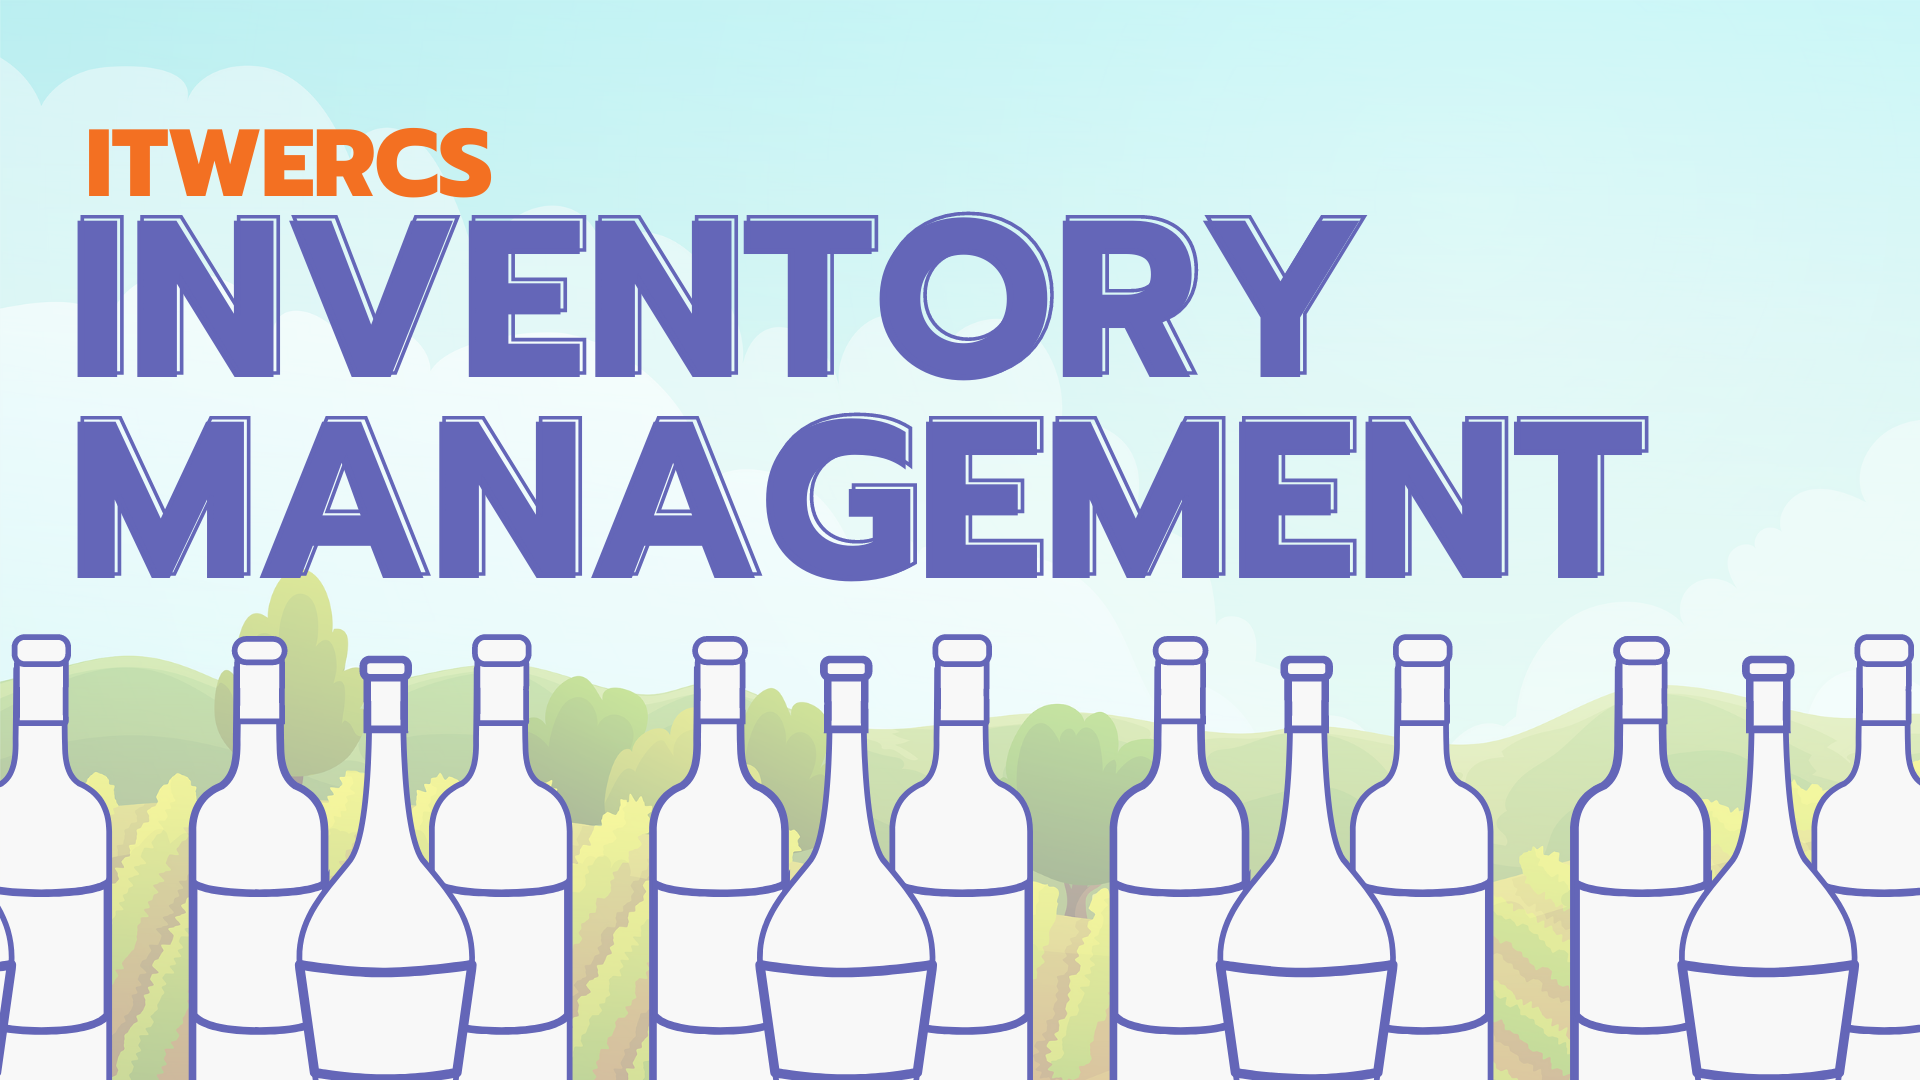 ITWERCS Inventory Management